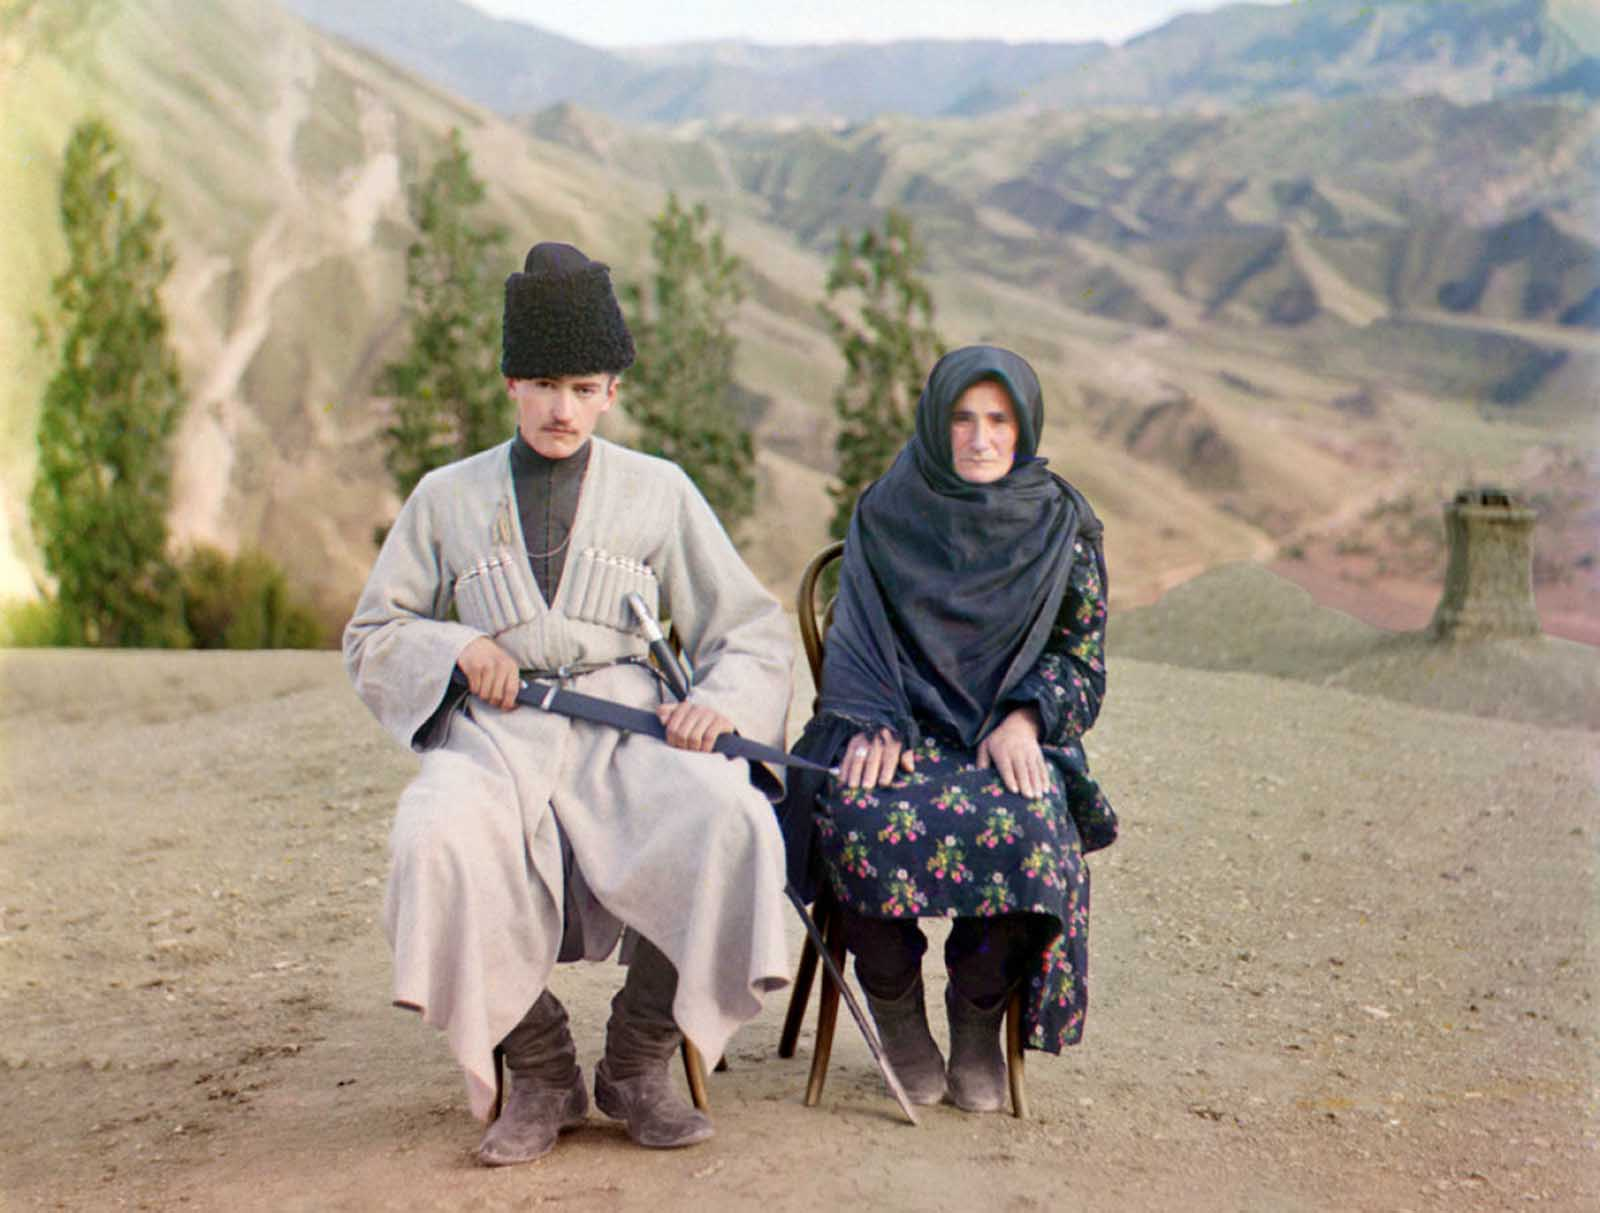 A man and woman pose in Dagestan, ca. 1910.